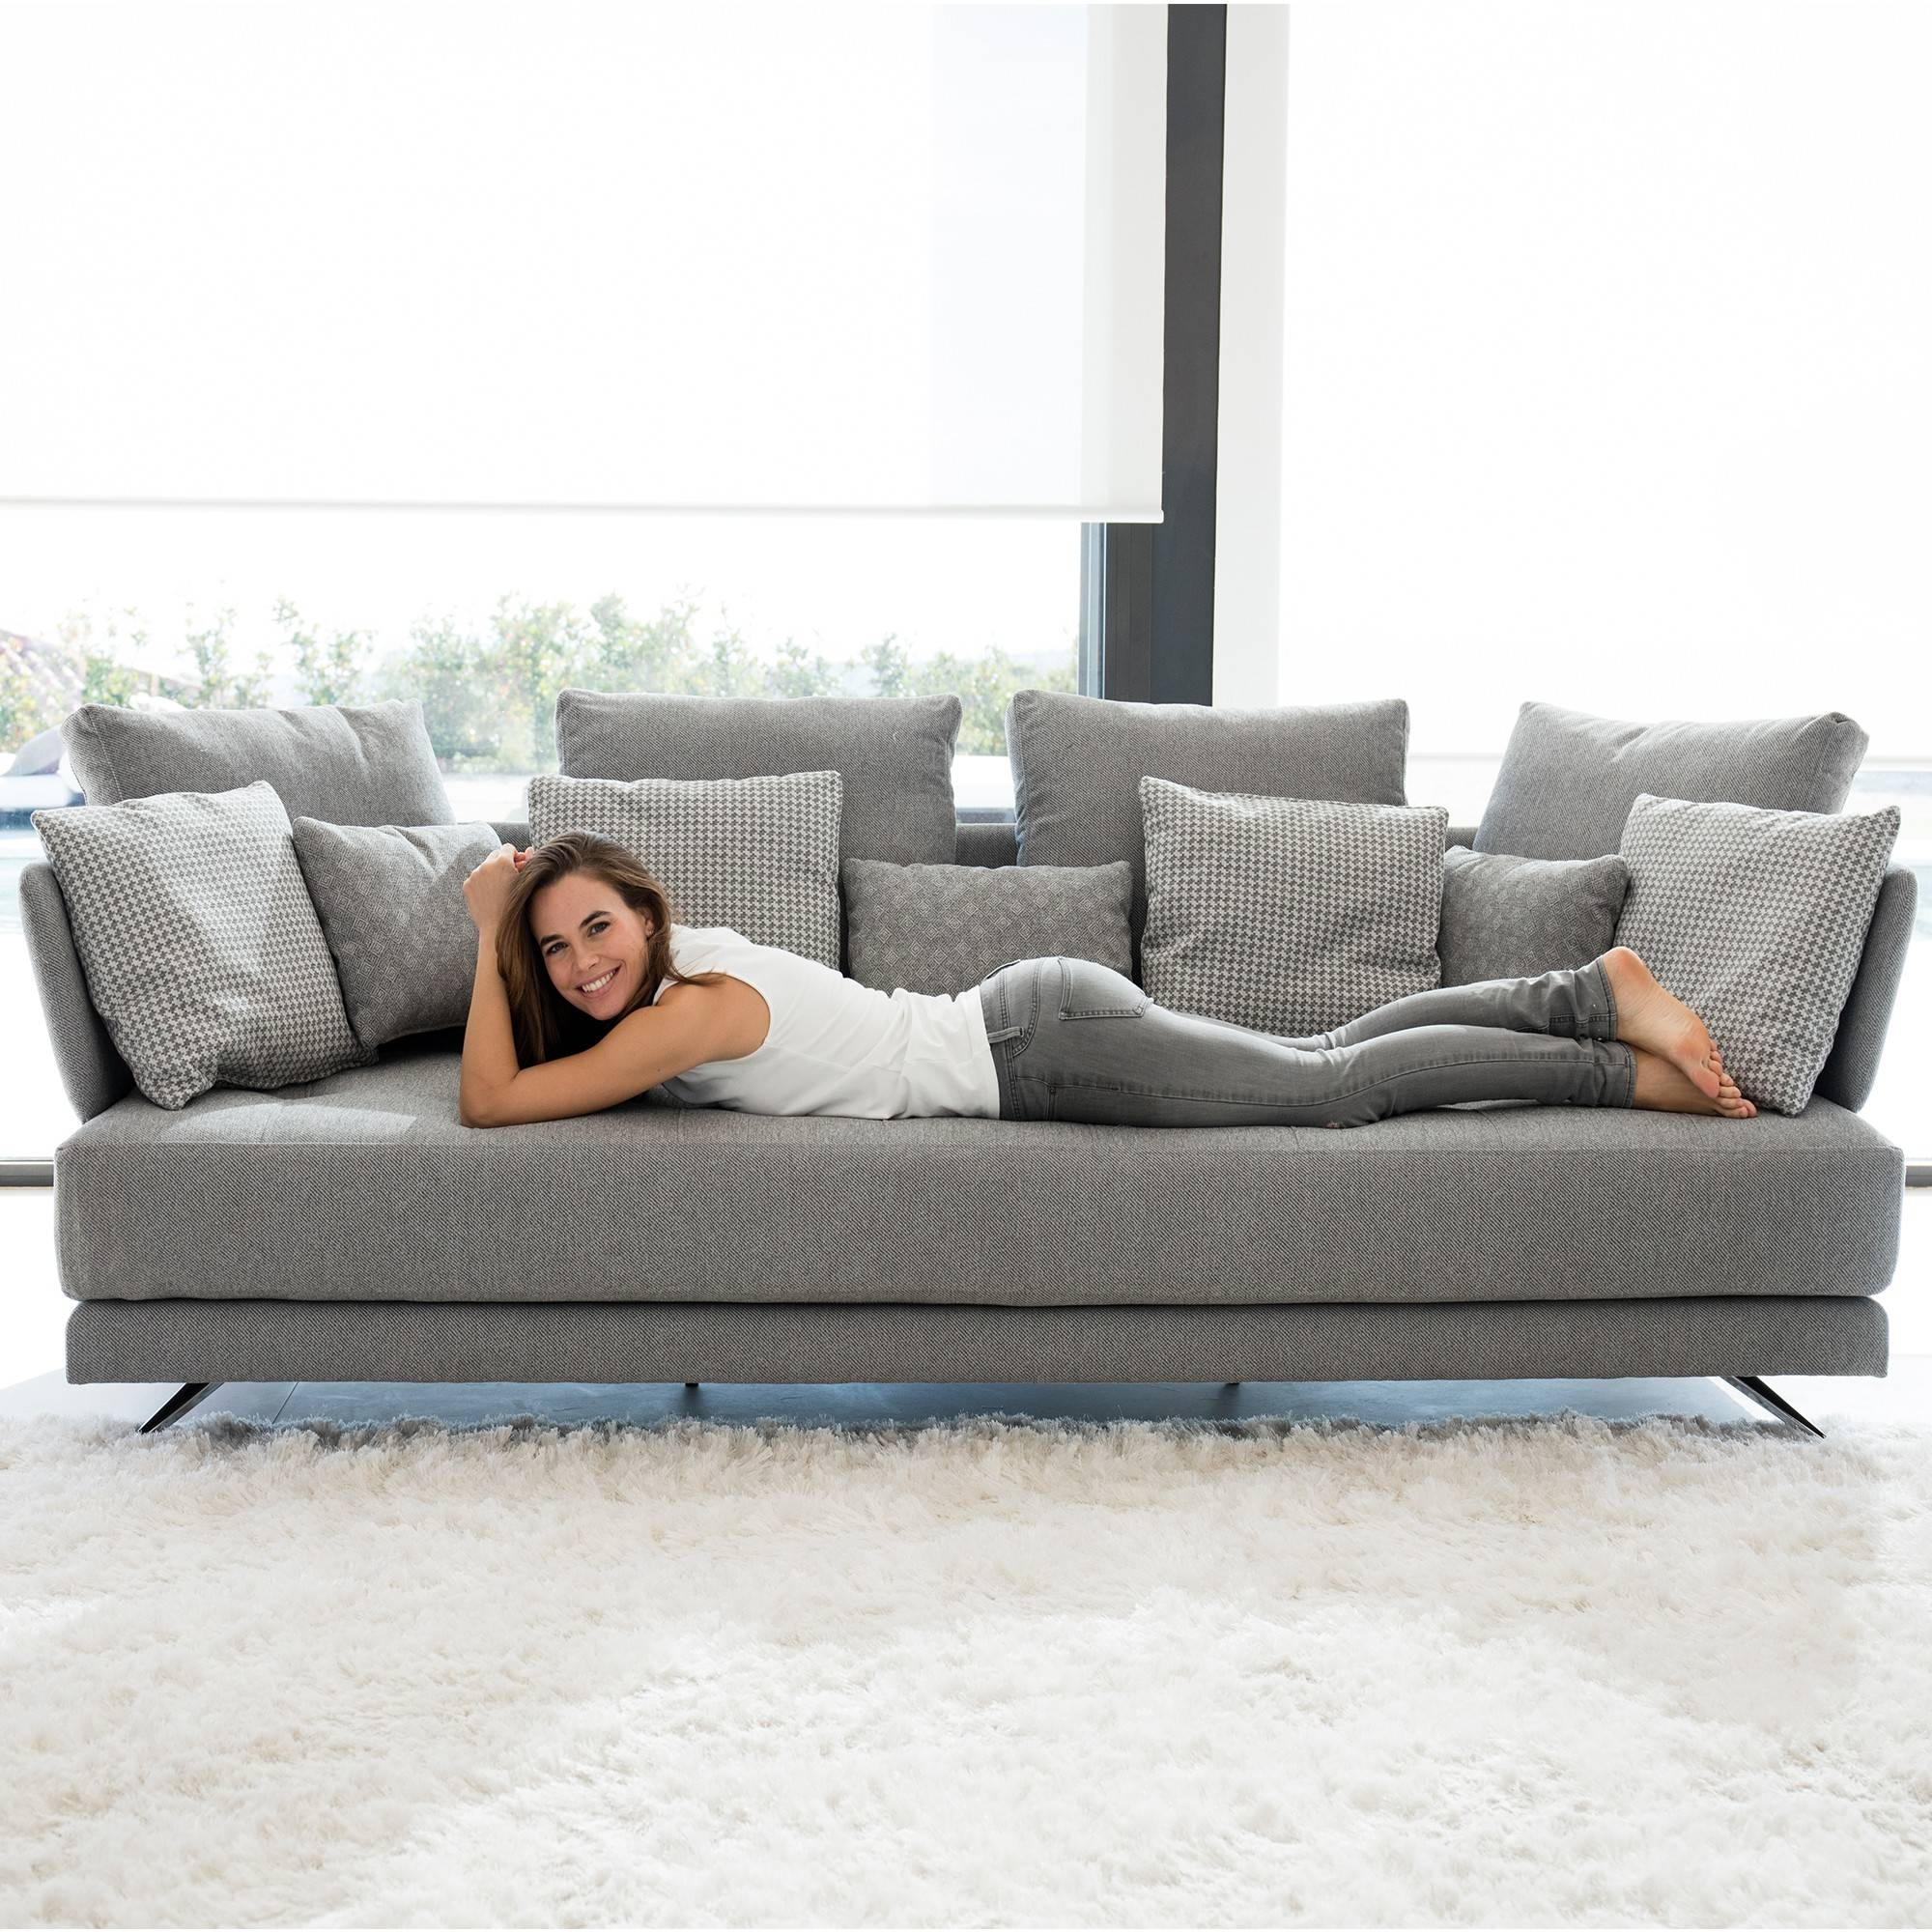 Fama Pacific 4 Seater Sofa - Fabric Sofas - Cookes Furniture throughout Large 4 Seater Sofas (Image 8 of 30)